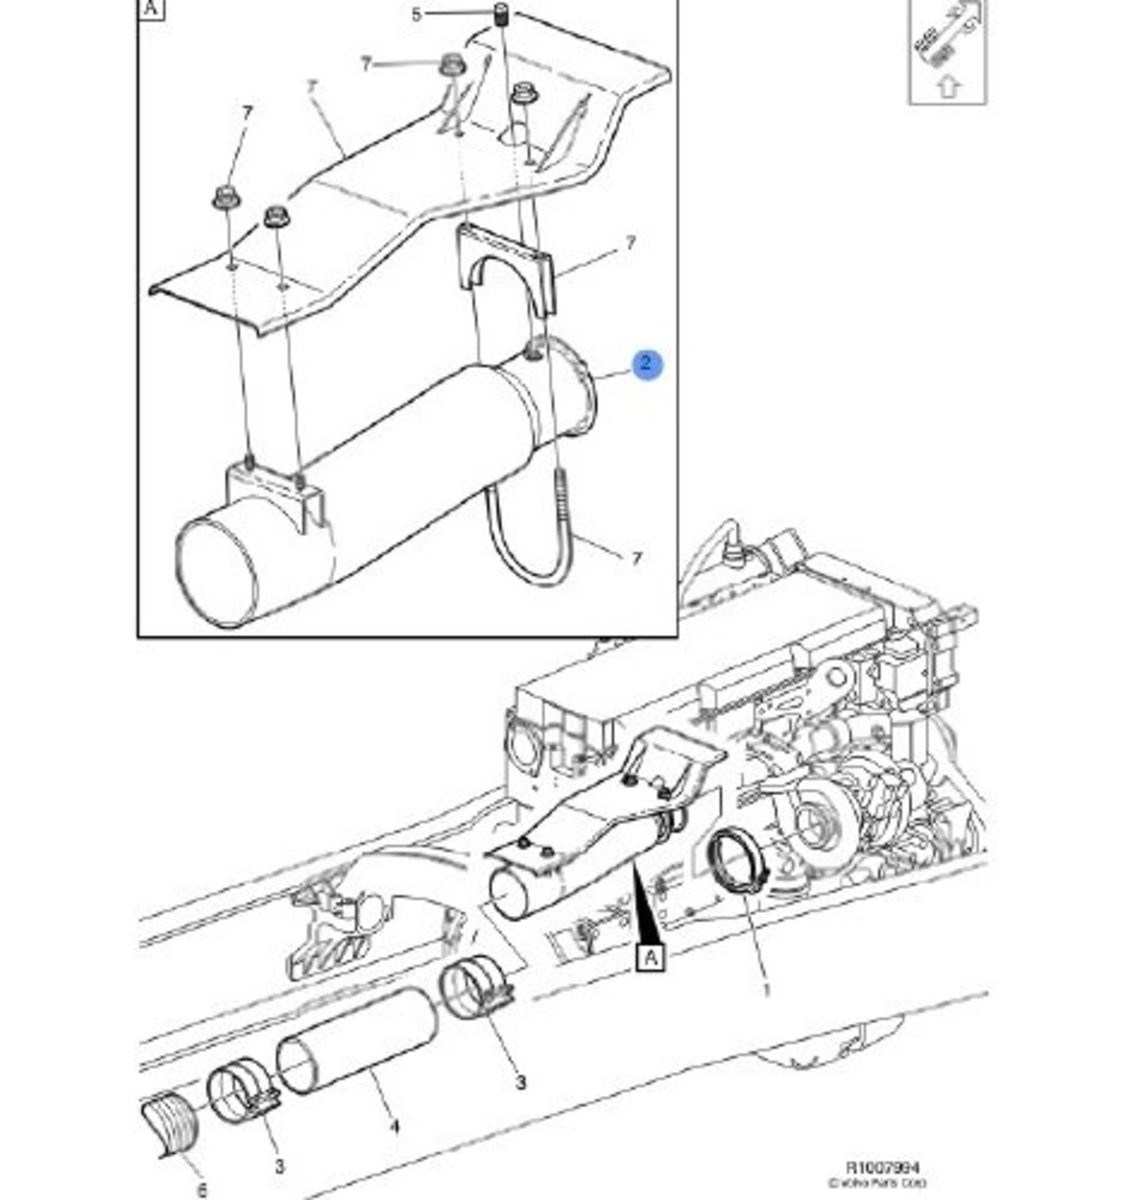 [TZ_2952] Re Cummins Isx Wiring Diagrams Please Free Diagram